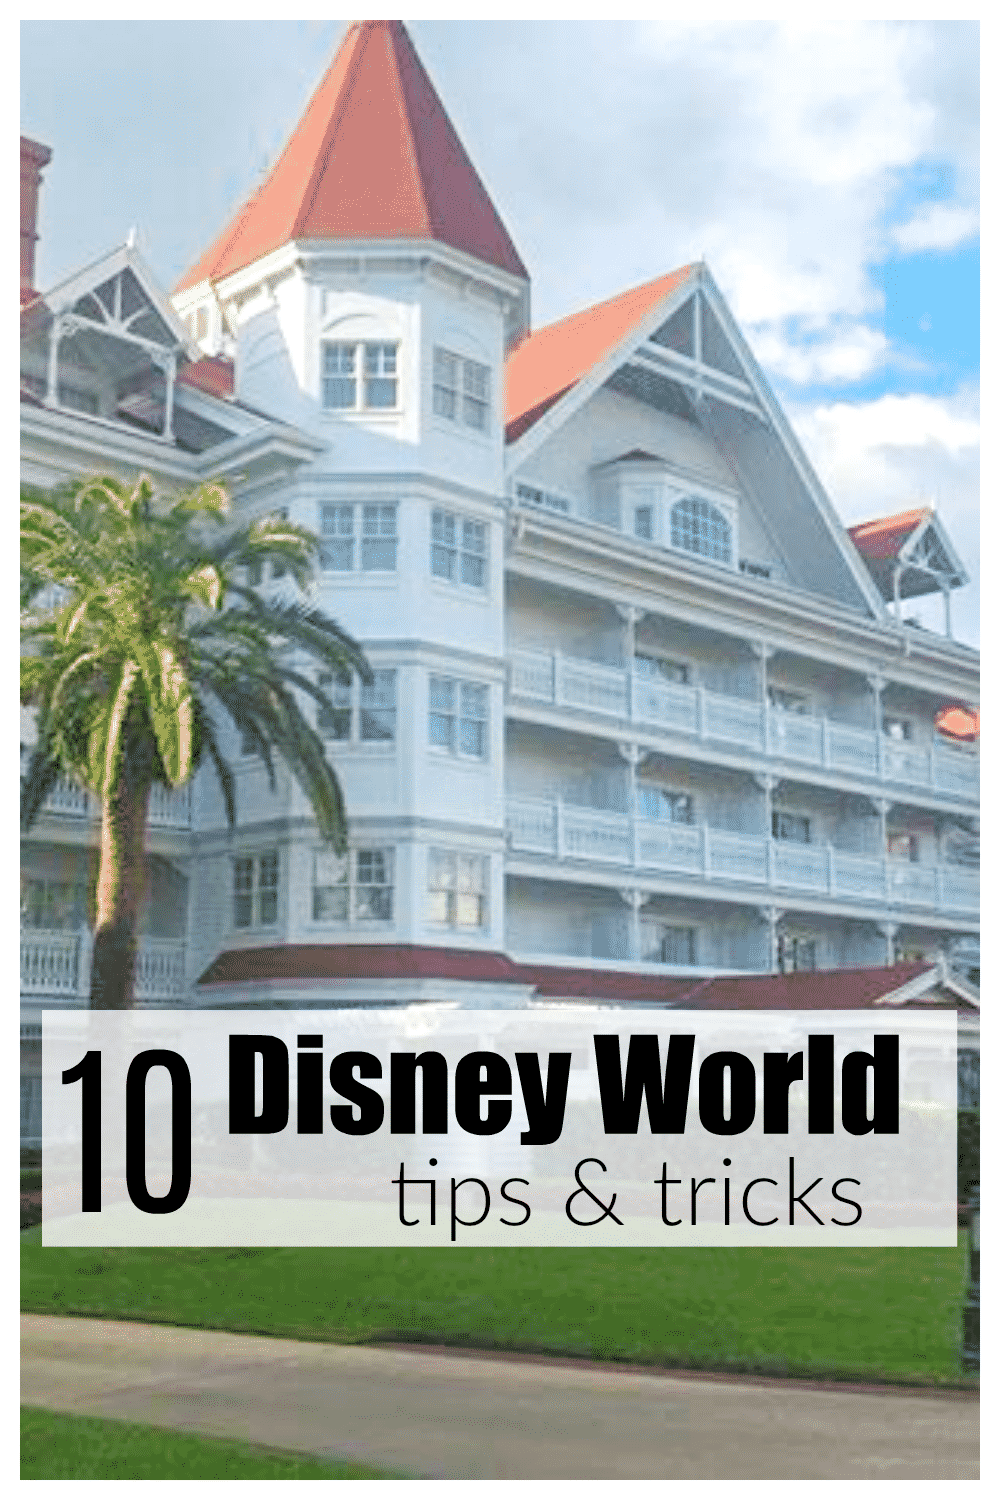 10 Disney World Tips and Tricks! These were SO helpful!